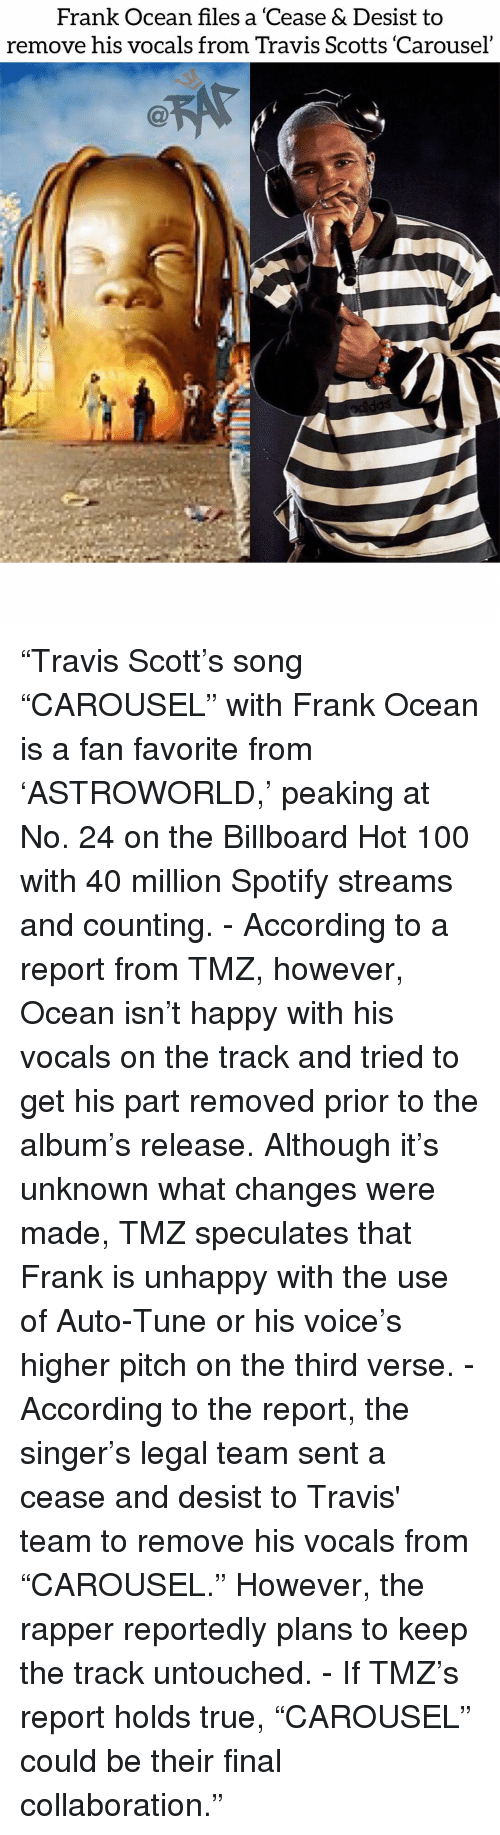 "Anaconda, Billboard, and Frank Ocean: Frank Ocean files a 'Cease & Desist to  remove his vocals from Travis Scotts 'Carousel ""Travis Scott's song ""CAROUSEL"" with Frank Ocean is a fan favorite from 'ASTROWORLD,' peaking at No. 24 on the Billboard Hot 100 with 40 million Spotify streams and counting. - According to a report from TMZ, however, Ocean isn't happy with his vocals on the track and tried to get his part removed prior to the album's release. Although it's unknown what changes were made, TMZ speculates that Frank is unhappy with the use of Auto-Tune or his voice's higher pitch on the third verse. - According to the report, the singer's legal team sent a cease and desist to Travis' team to remove his vocals from ""CAROUSEL."" However, the rapper reportedly plans to keep the track untouched. - If TMZ's report holds true, ""CAROUSEL"" could be their final collaboration."""